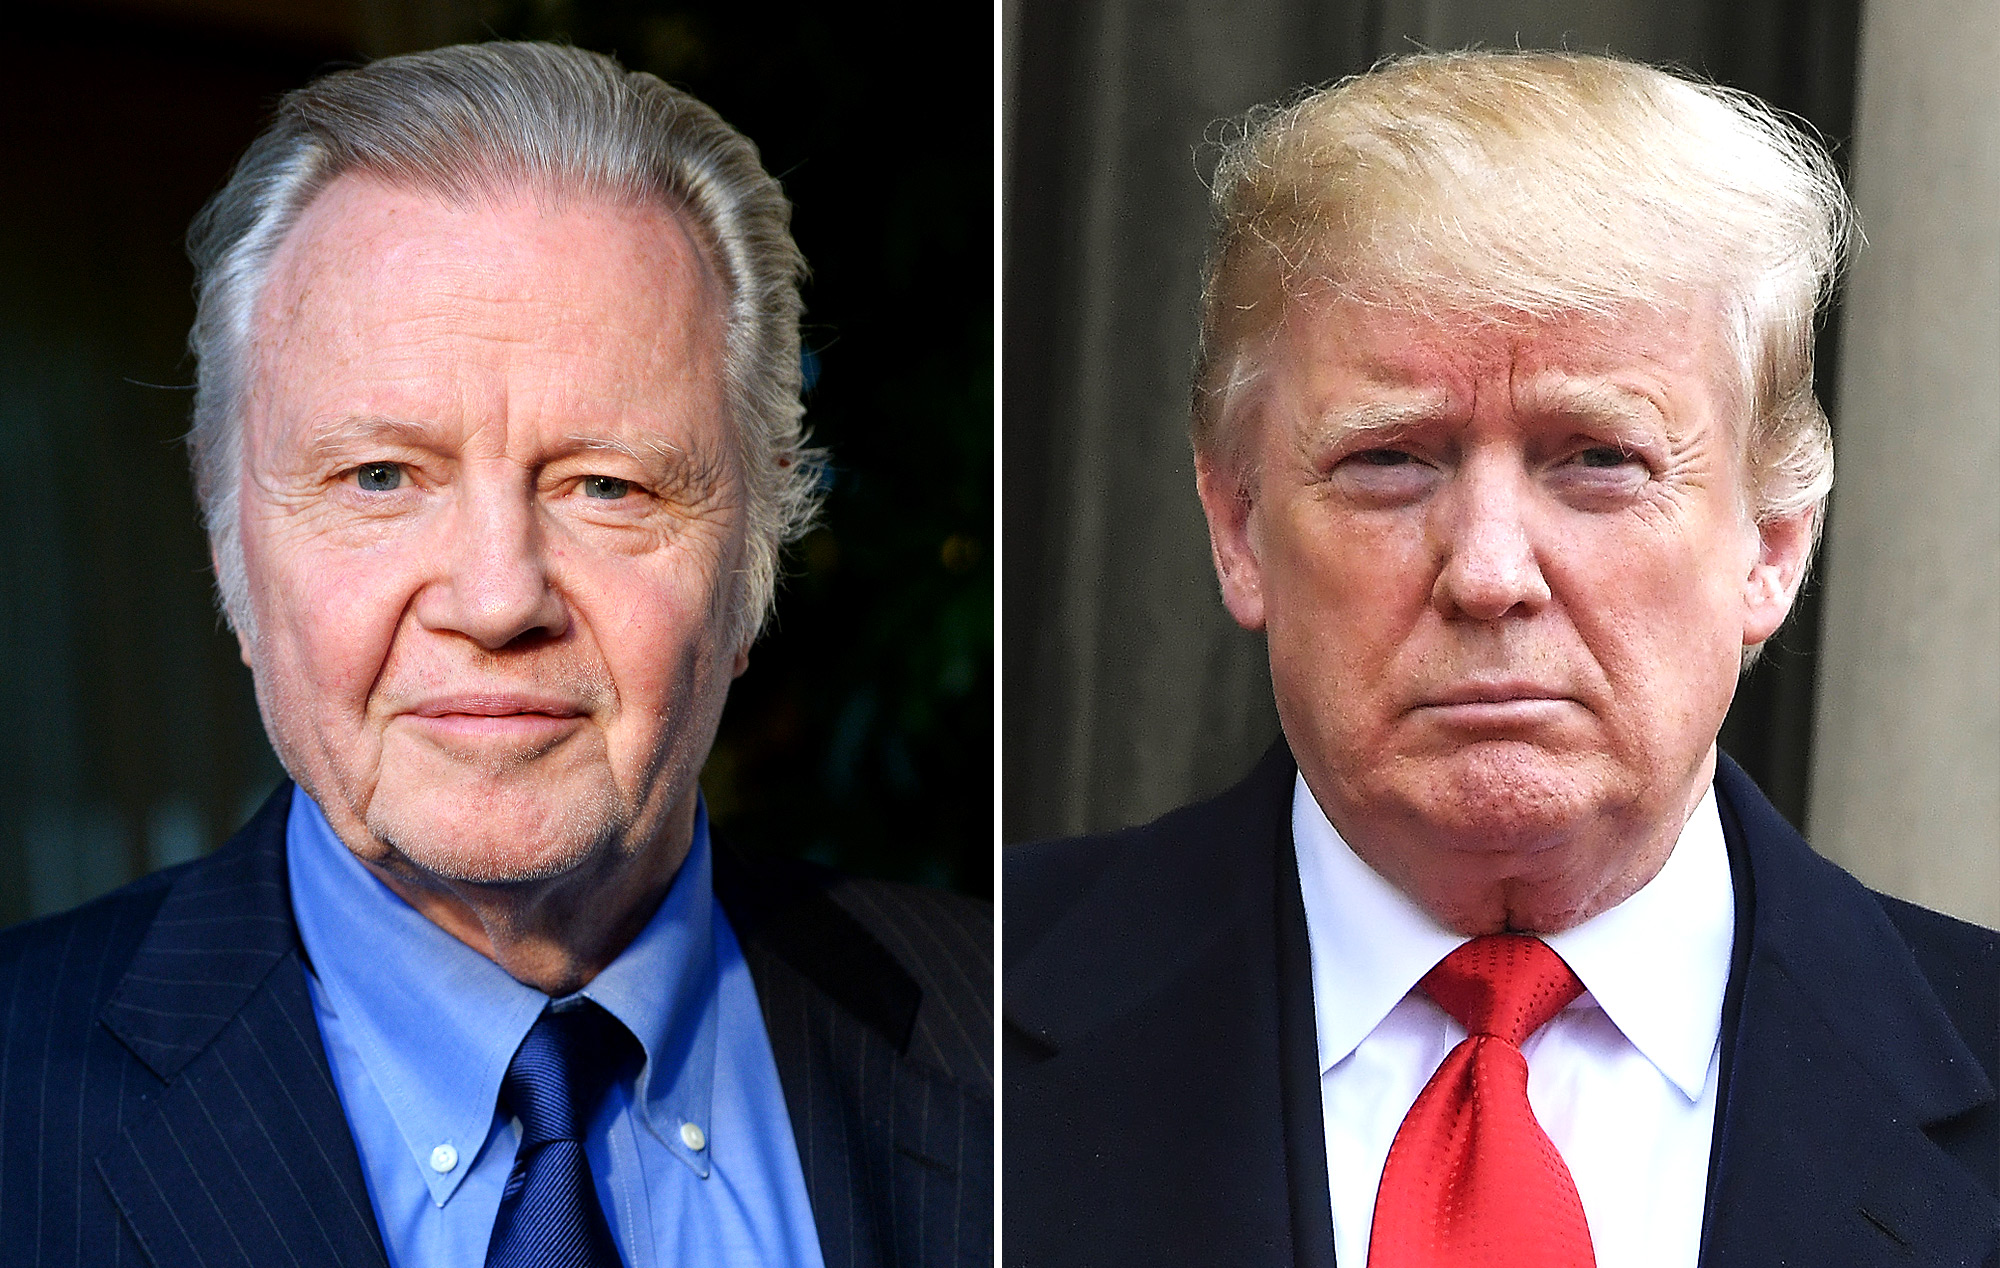 angelina-jolies-father-jon-voight-praises-donald-trump-says-hes-the-greatest-president-since-lincoln-and-people-have-some-thoughts